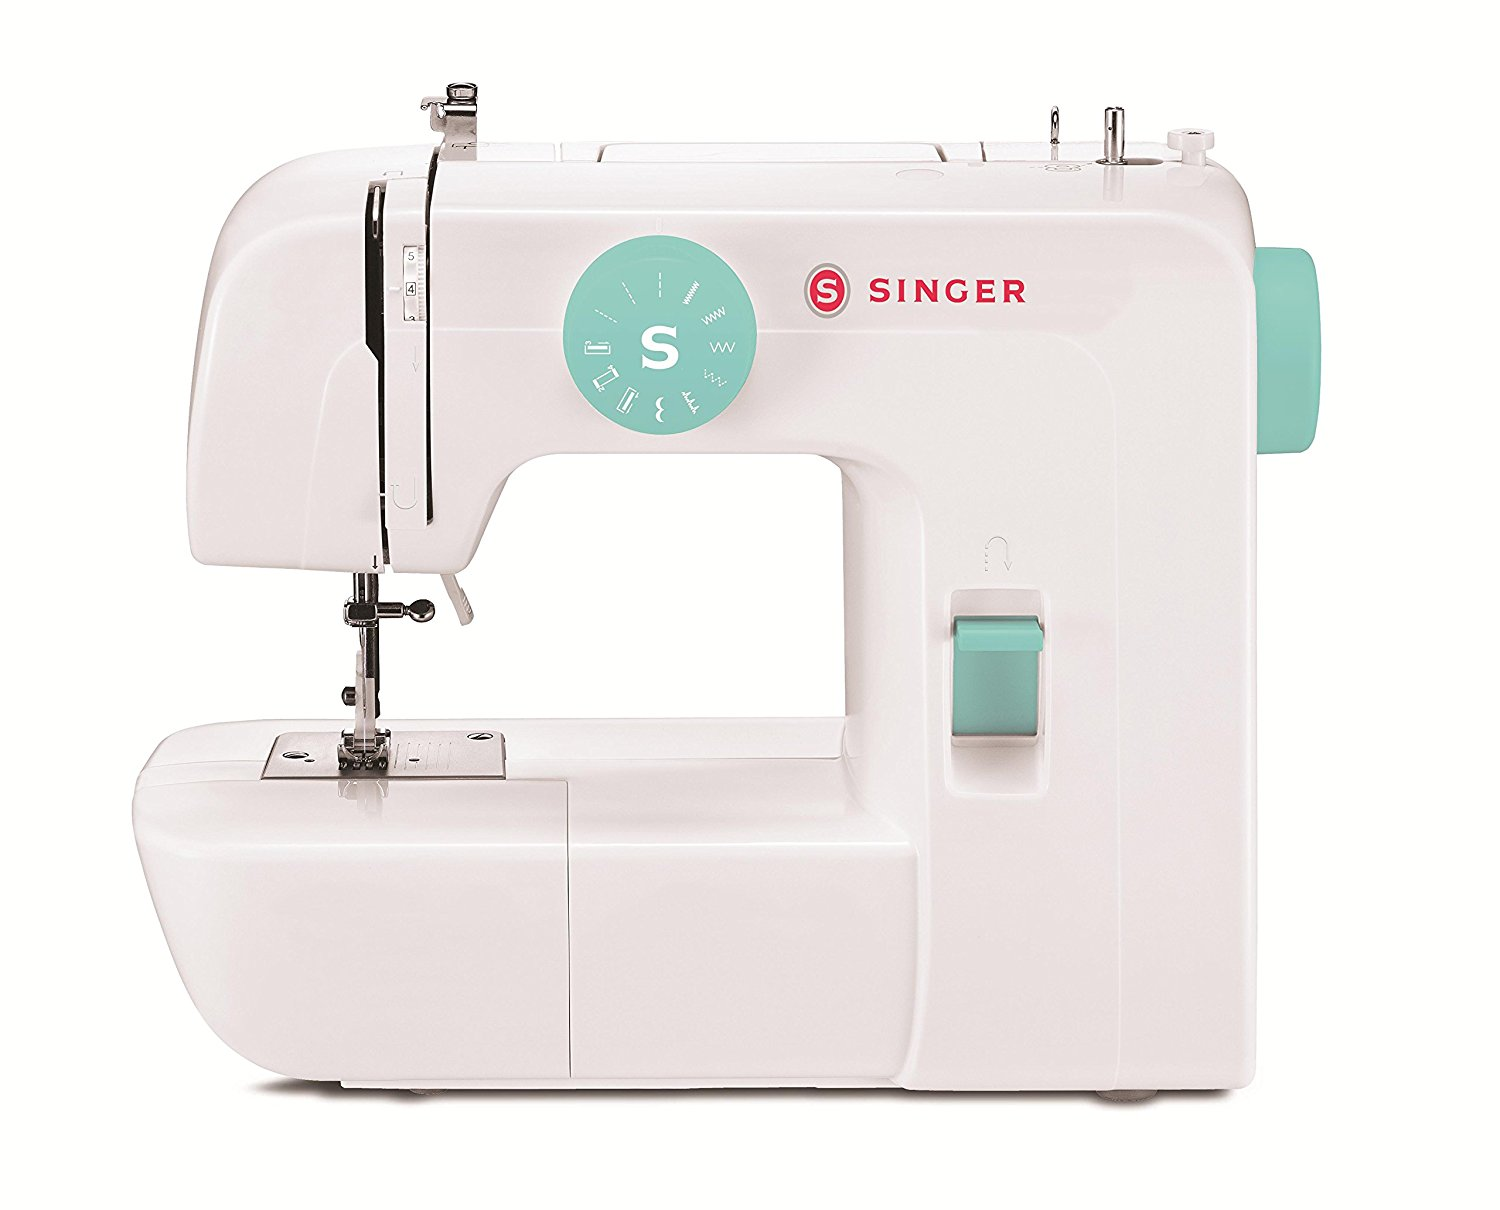 Singer Sewing and Embroidery Machine: A budget-friendly machine Singer offers